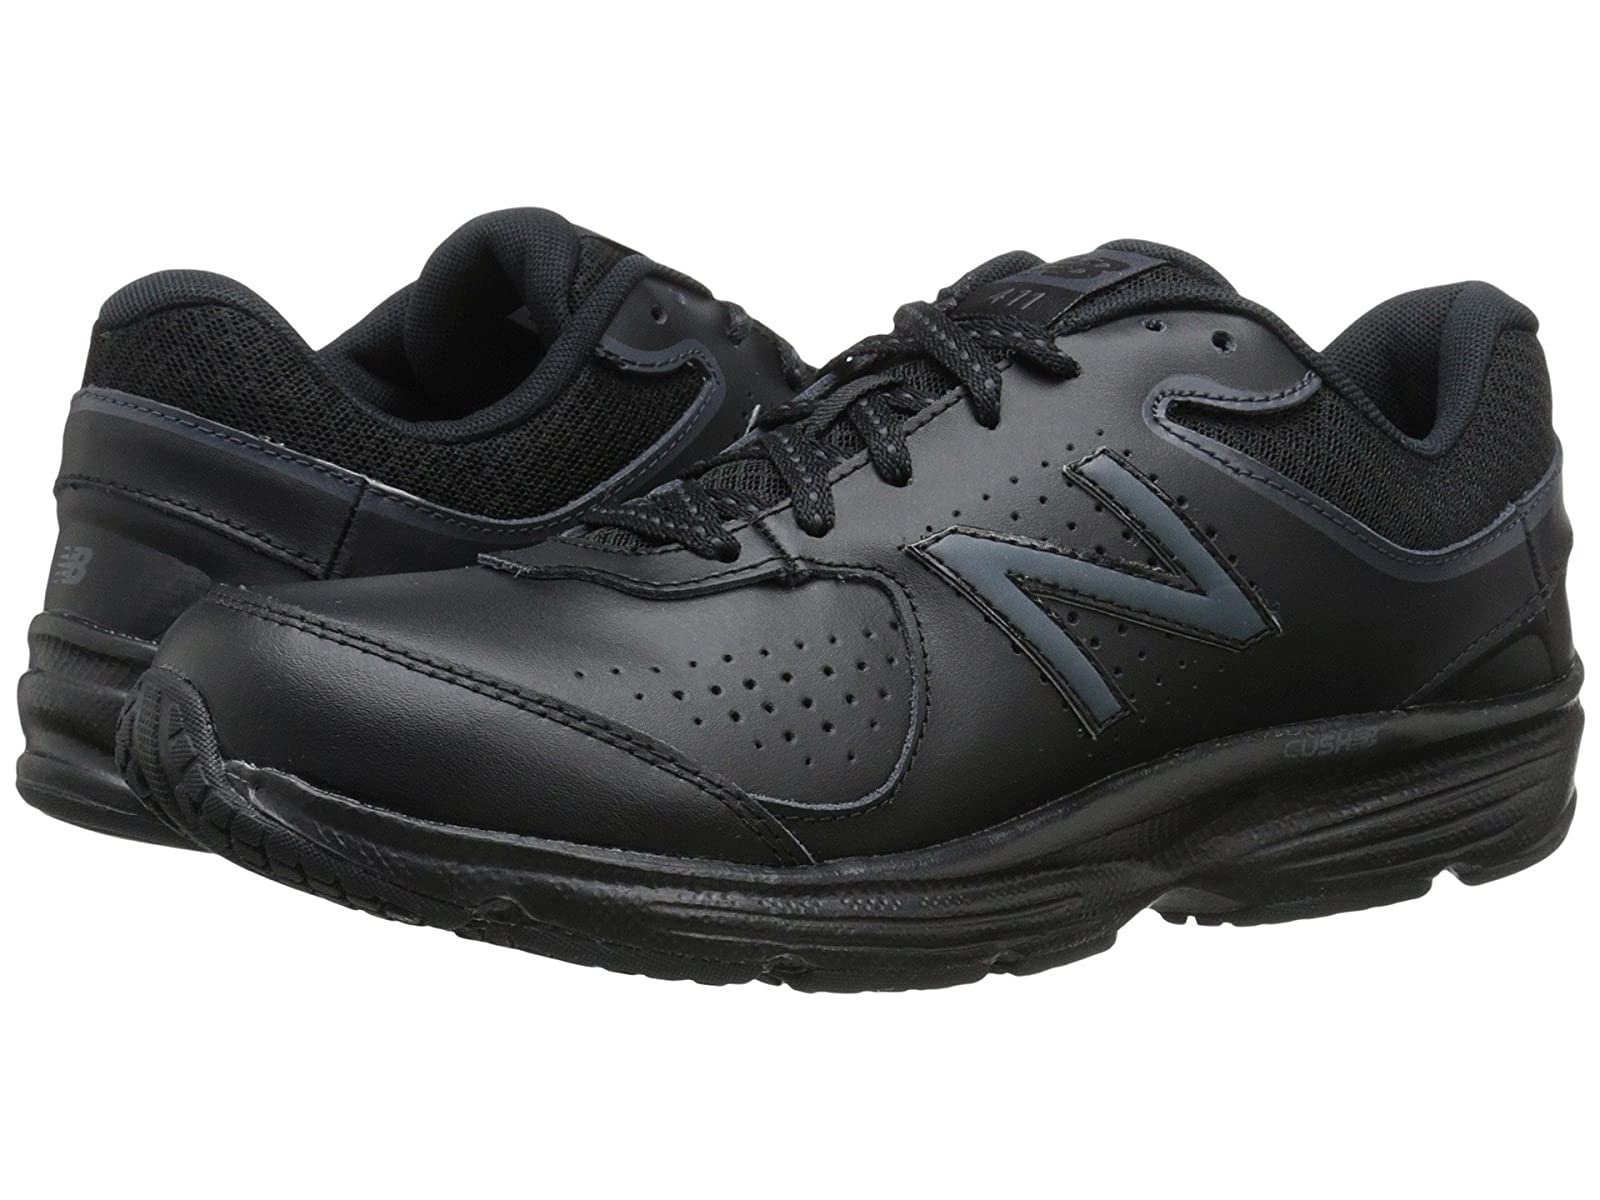 New Balance WW411v2Atmospheric grades have affordable shoes